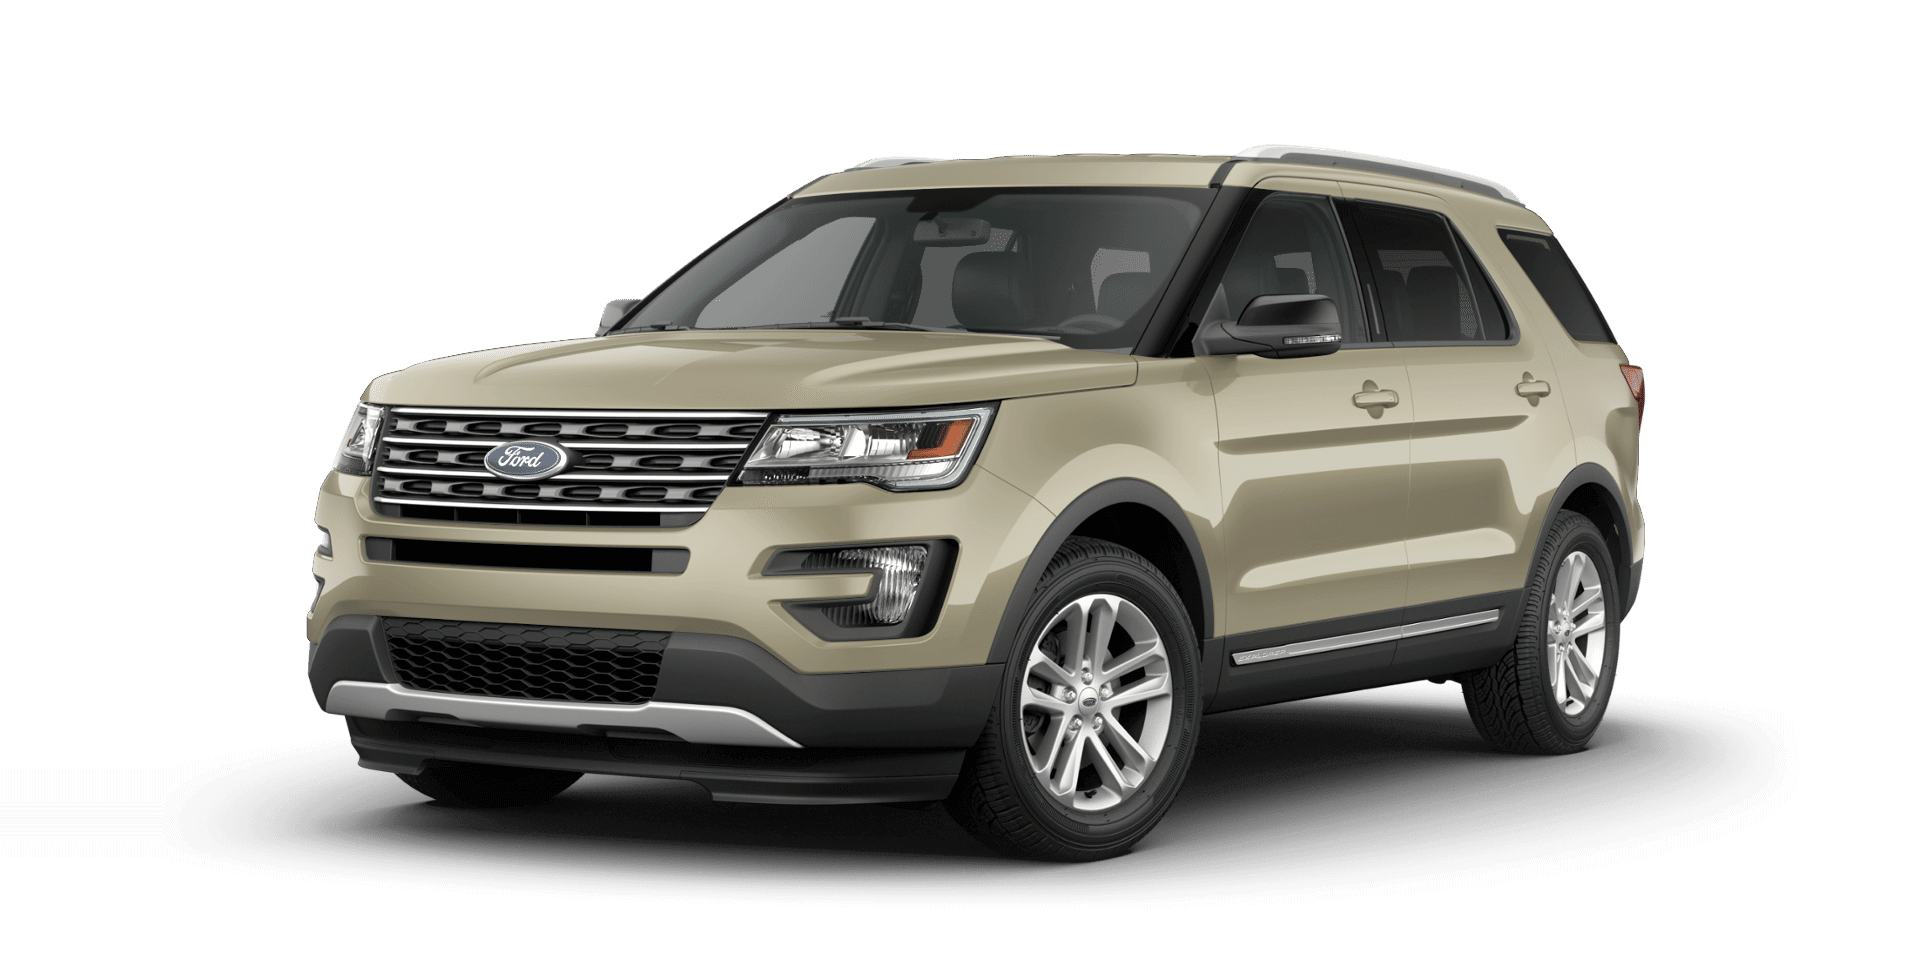 2017 Ford Explorer Info River View Ford